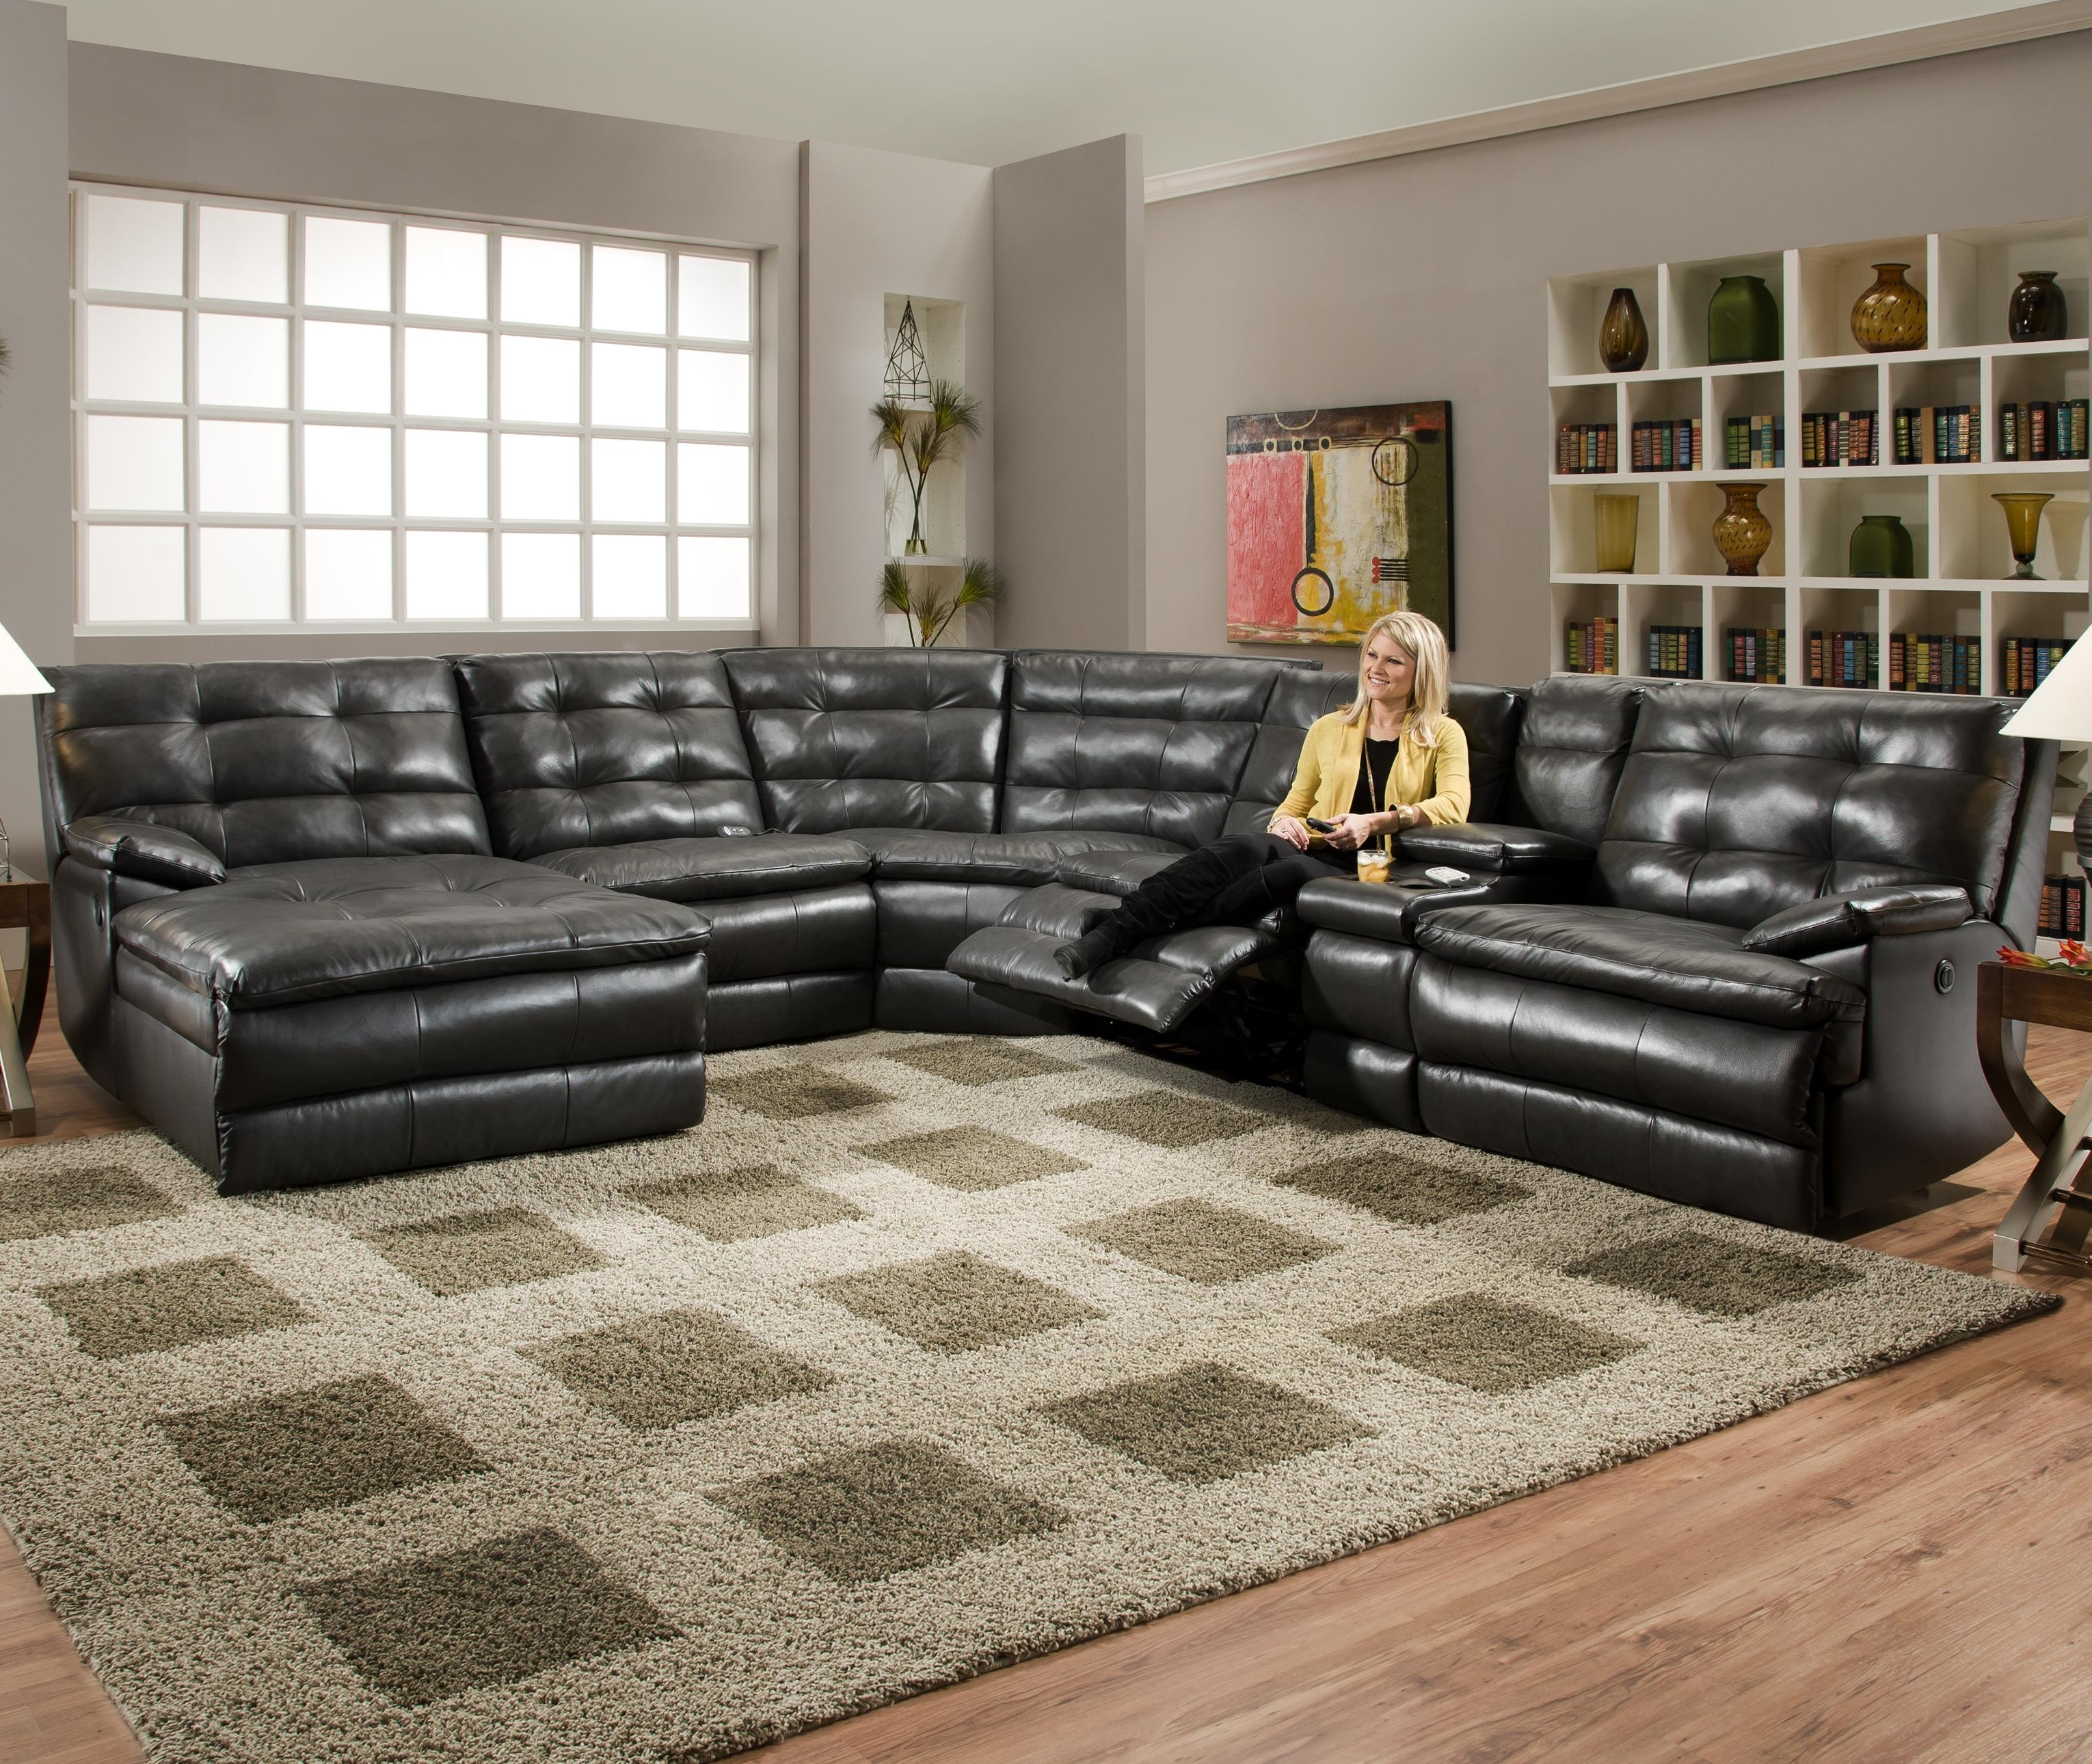 Best And Newest Luxurious Tufted Leather Sectional Sofa In Classy Black Color With With Sectional Sofas With Power Recliners (View 14 of 20)